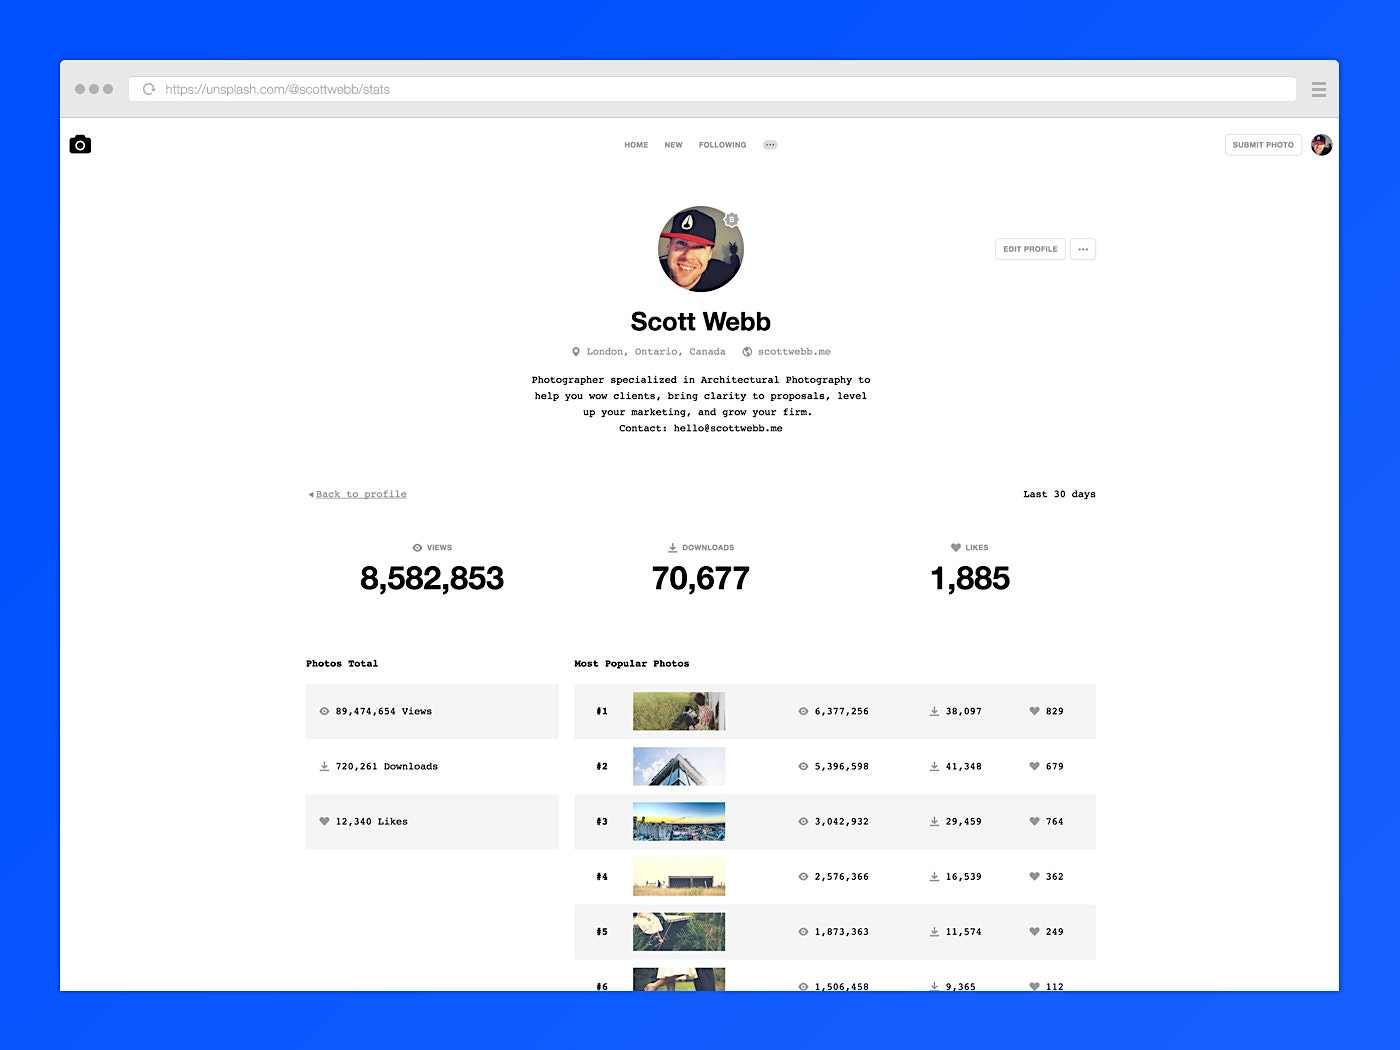 Behind the scene look at the Unsplash stats page for my profile